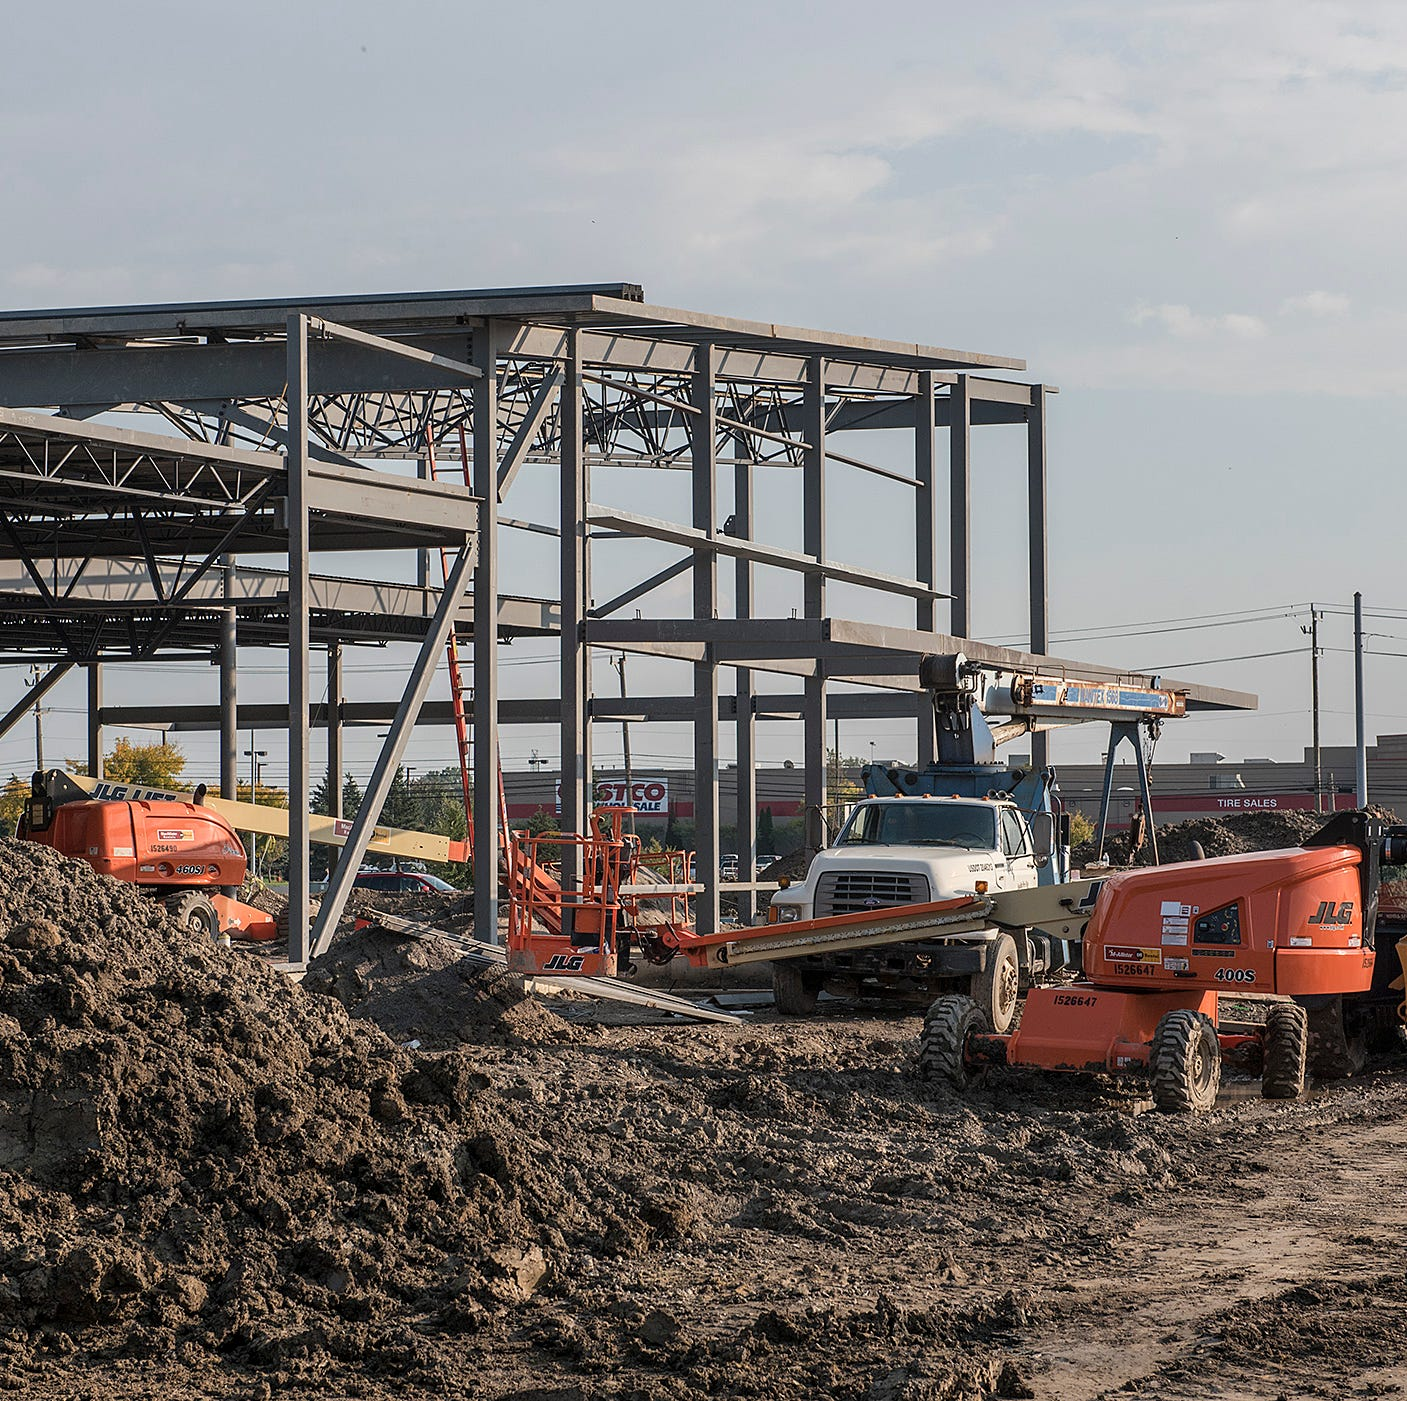 Aldi could open Livonia market by year's end, as makeover of Westland store OK'd